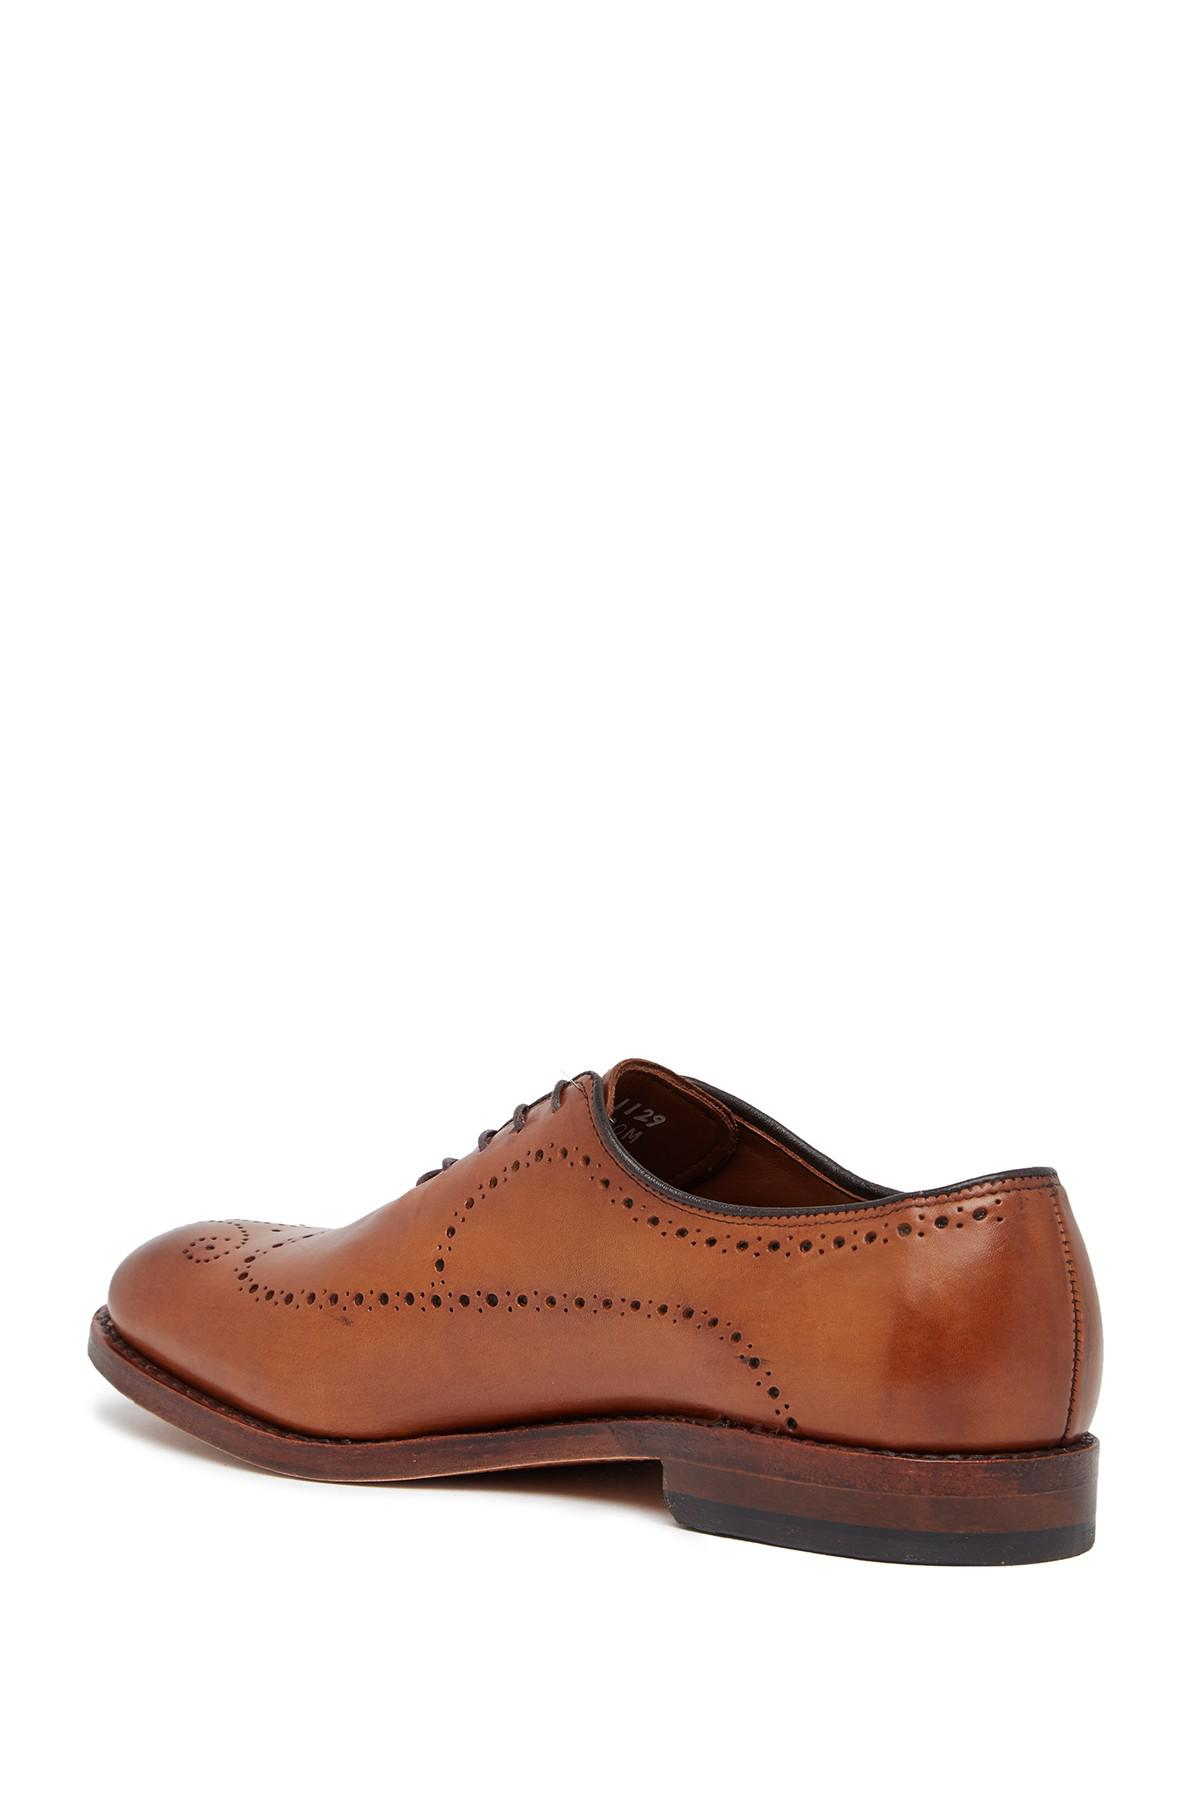 lyst allen edmonds fairfax leather oxford wide width available